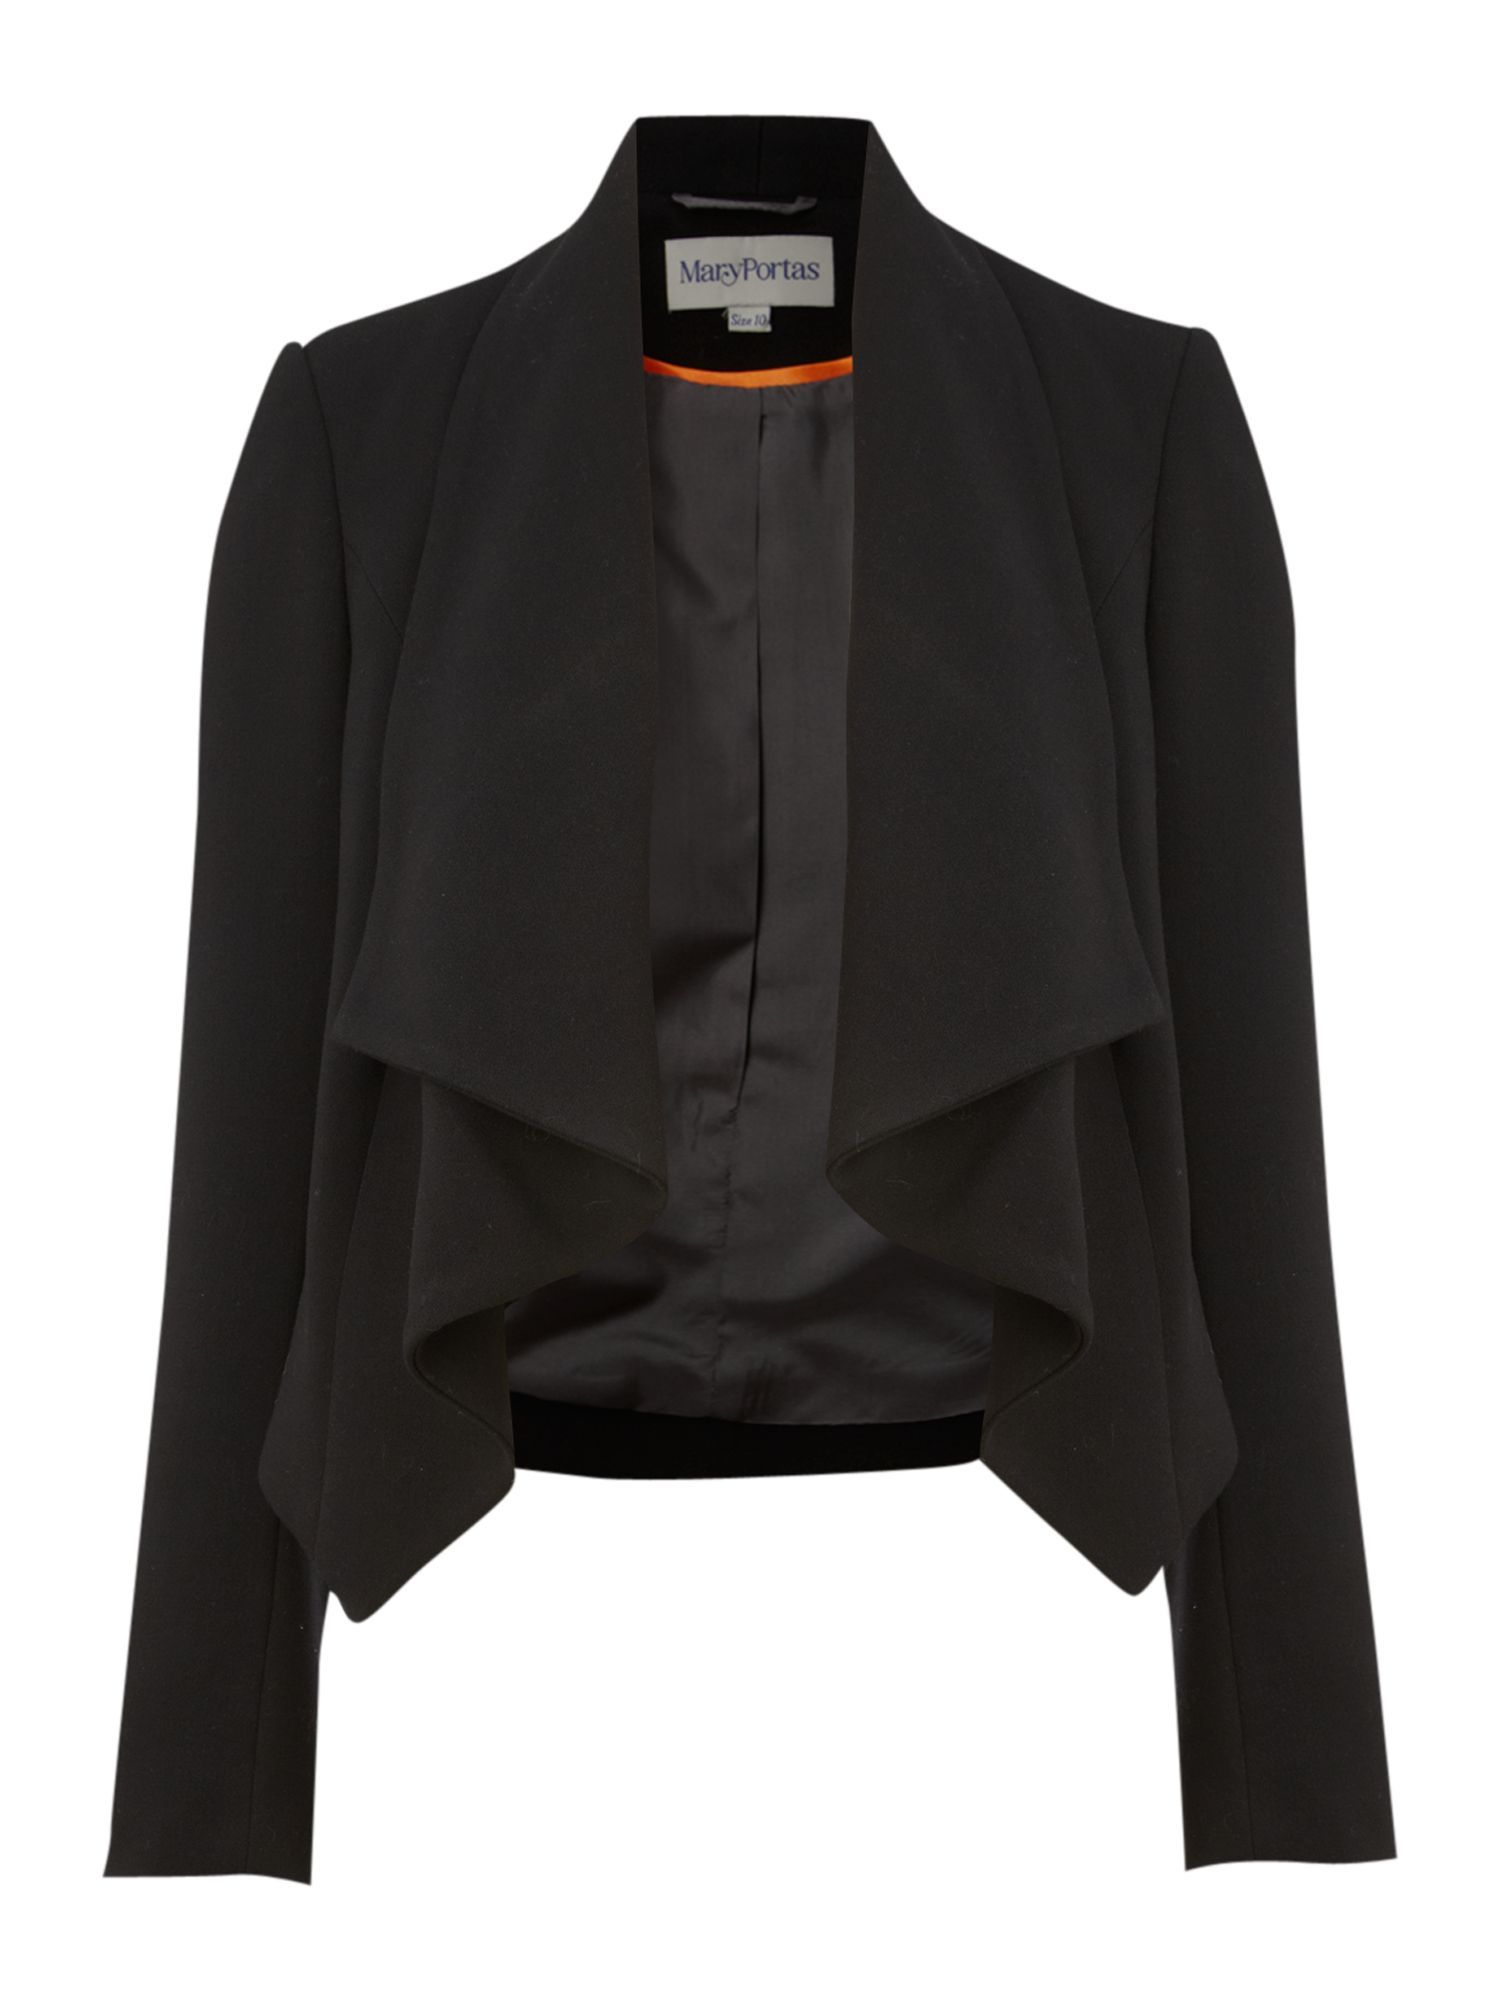 Women&#x27;s Cropped Jacket With Drape Collar, Black - pattern: plain; style: cropped; shoulder detail: shoulder pads; collar: shawl/waterfall; length: cropped; predominant colour: black; occasions: evening, work; fit: tailored/fitted; fibres: polyester/polyamide - mix; sleeve length: long sleeve; sleeve style: standard; collar break: low/open; pattern type: fabric; pattern size: standard